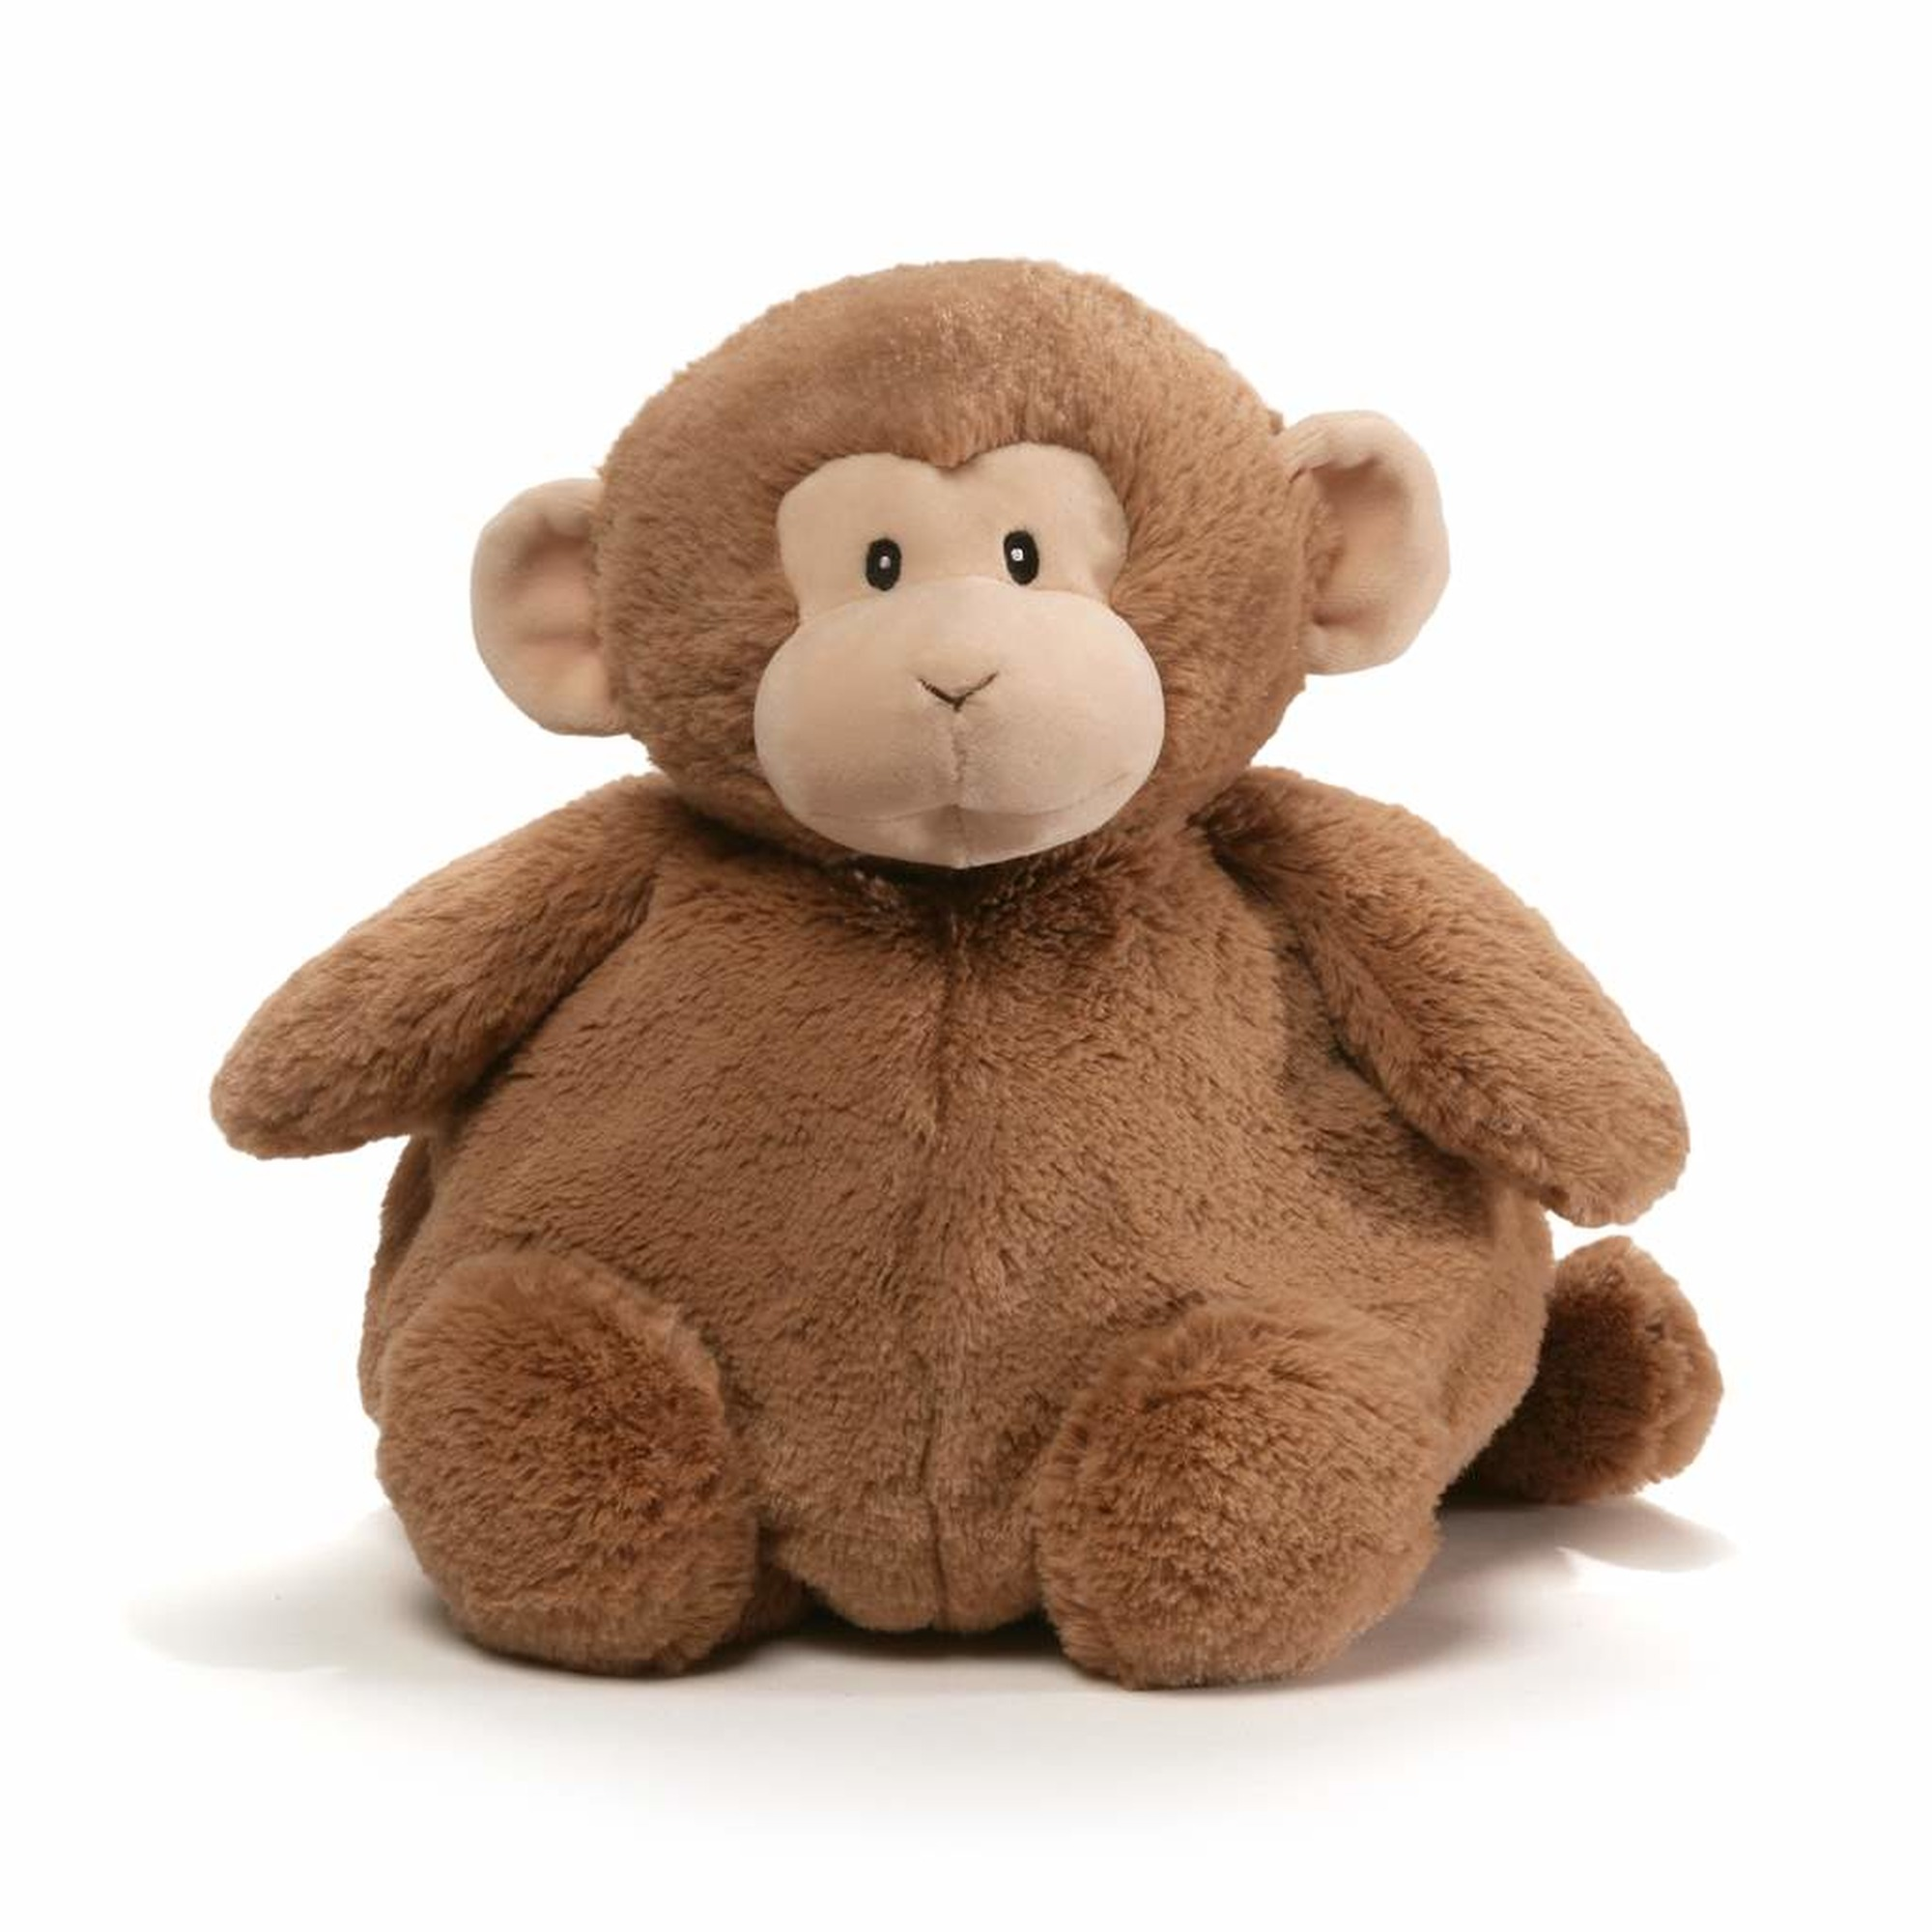 Baby Gund Chub Monkey Plush 10 Inches - Natures Collection Soft Toys ...